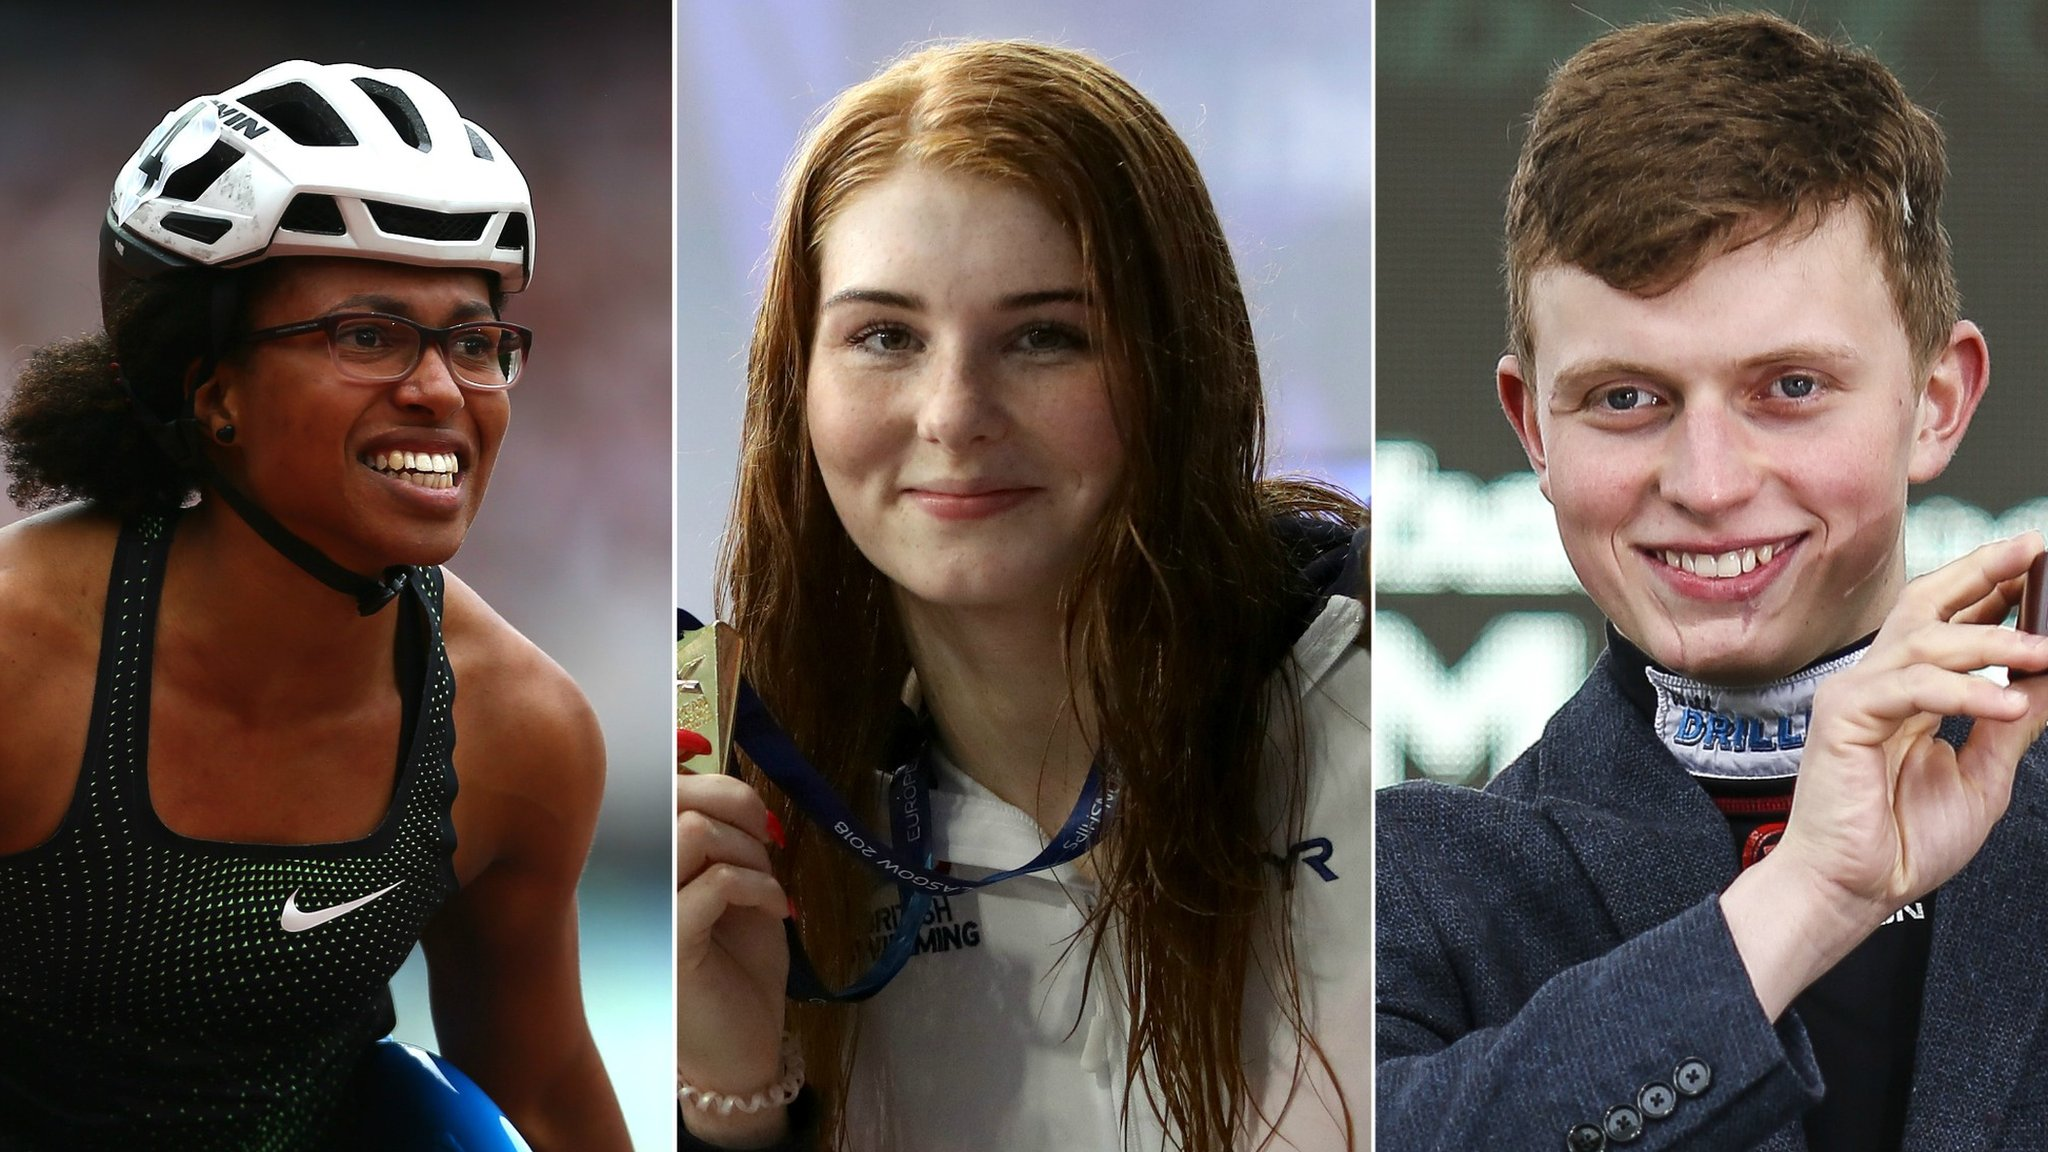 BBC Young Sports Personality 2018: Kare Adenegan, Freya Anderson & James Bowen on shortlist